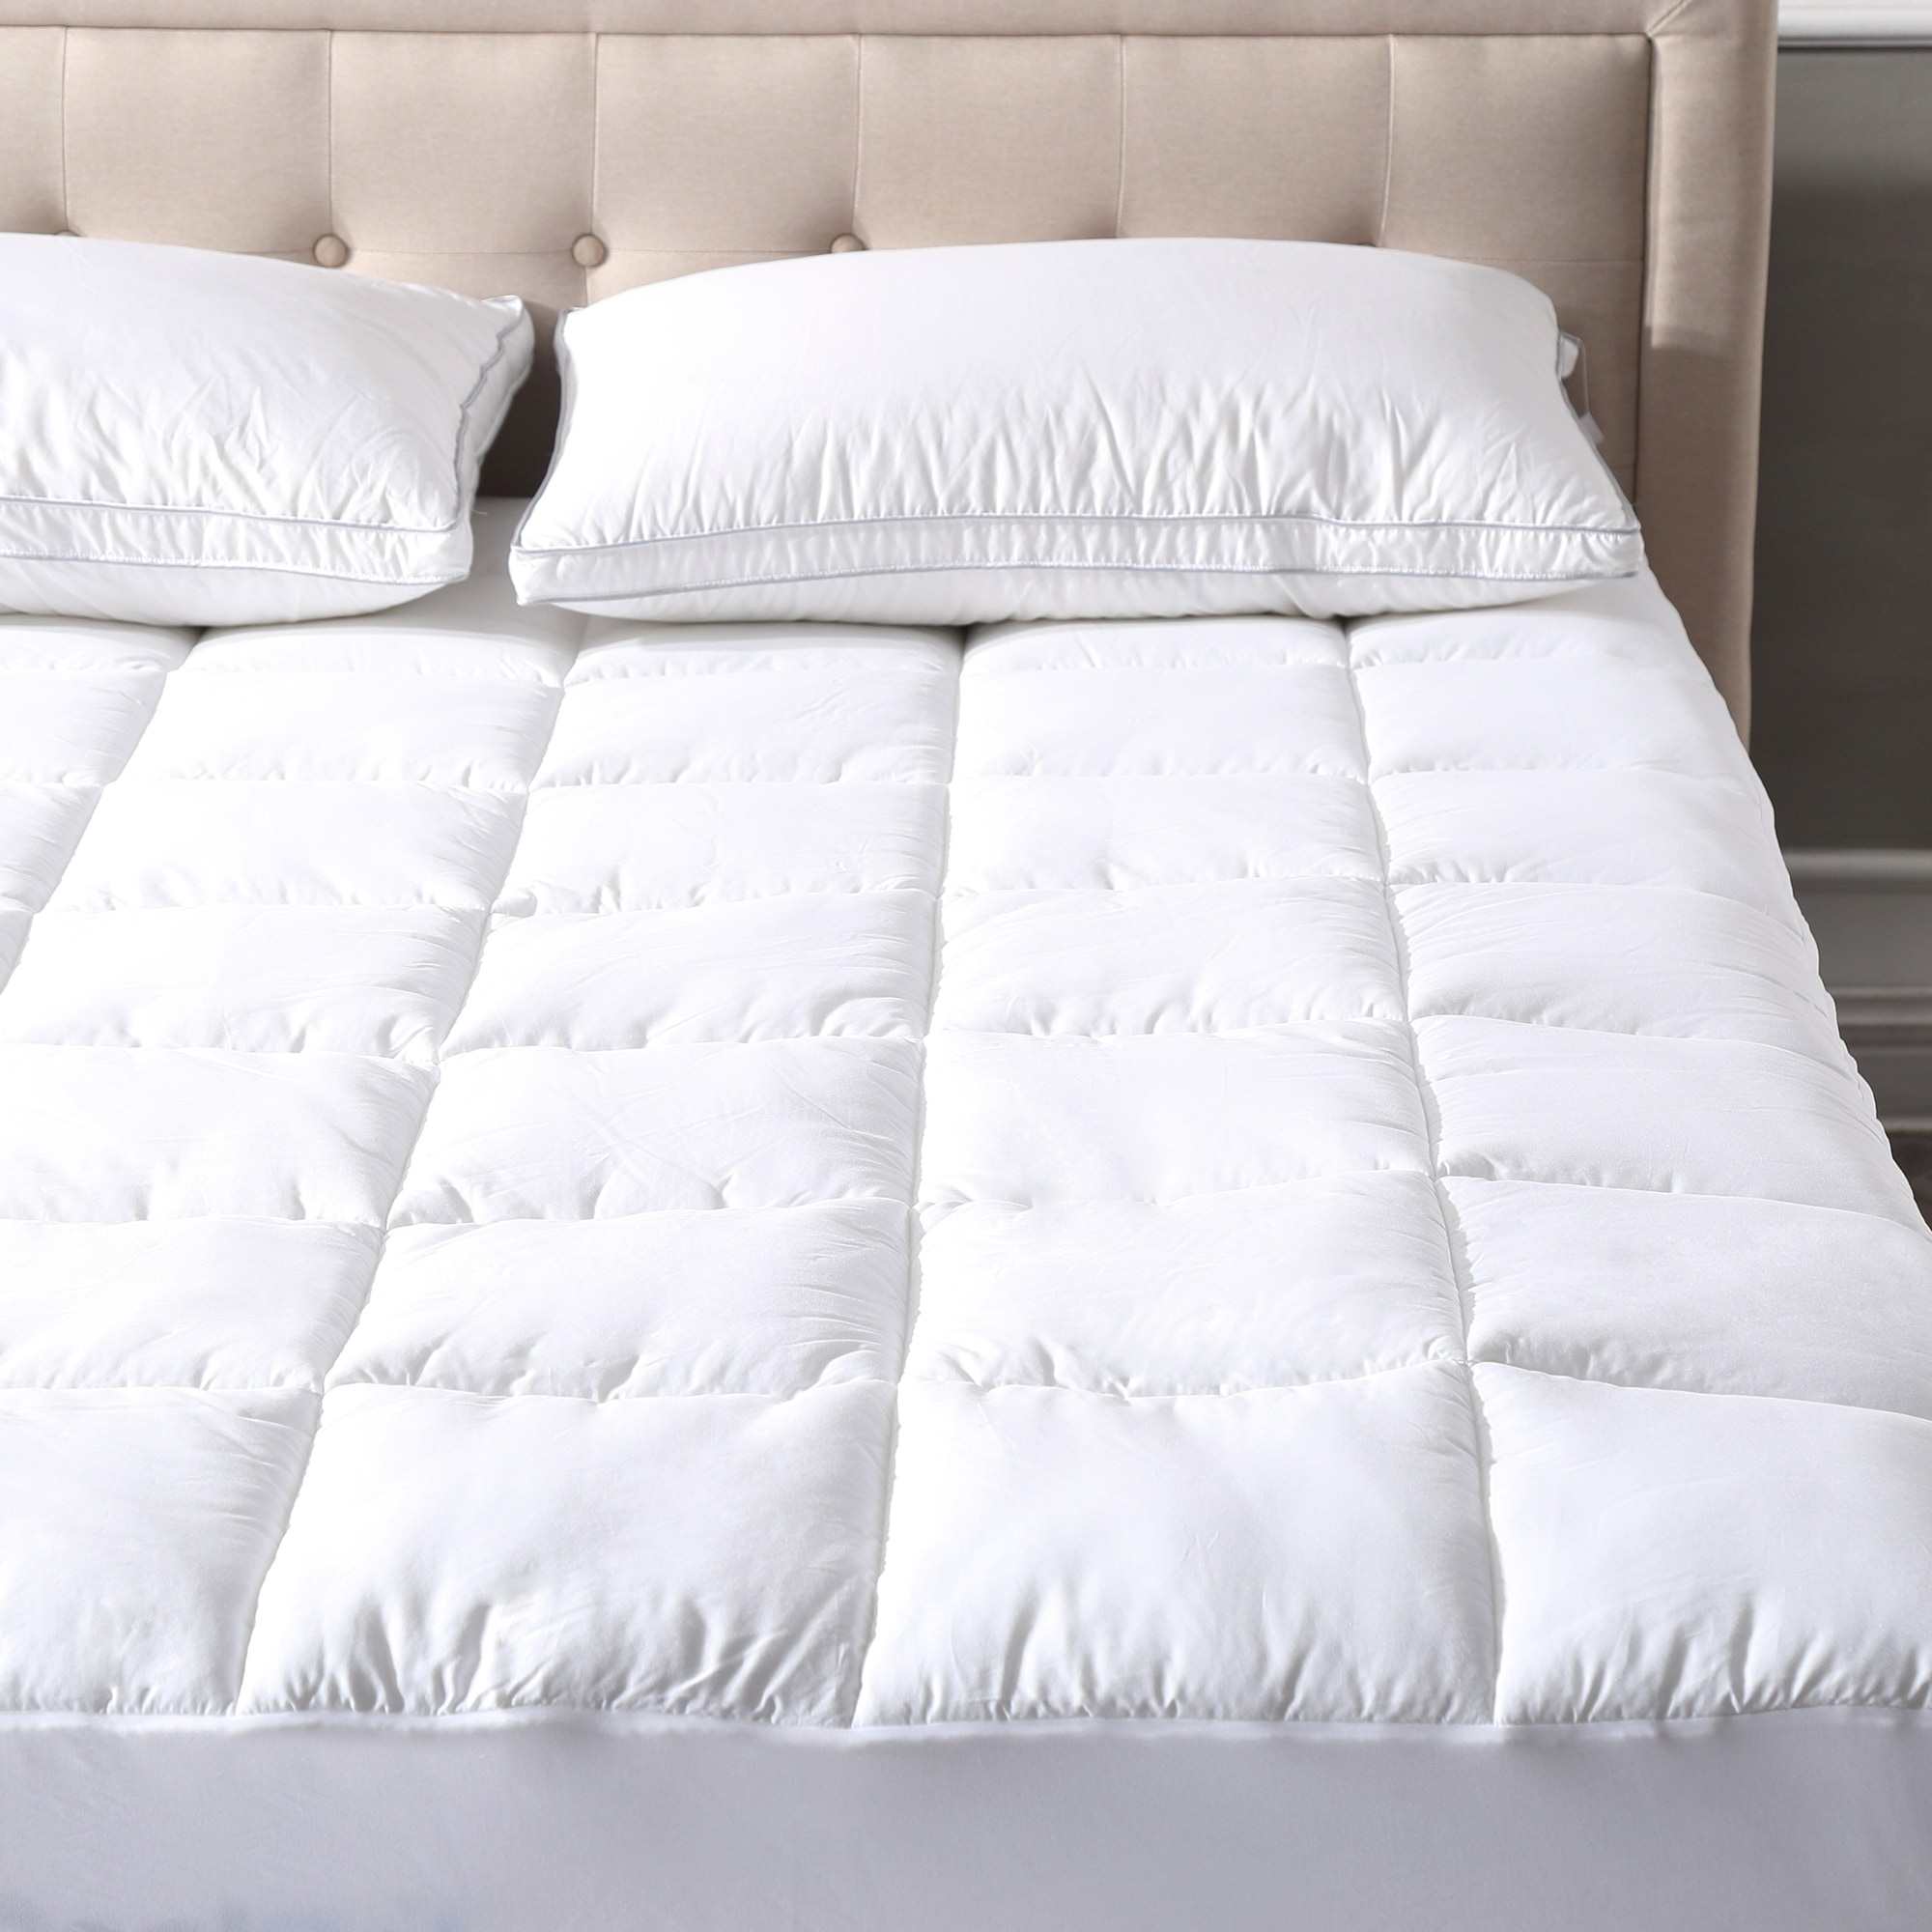 Comfortable Ultra-Soft Cotton Quilted Mattress Pad Full, White by Great Bay Home Brand. Stretches up to 18 Inches Deep